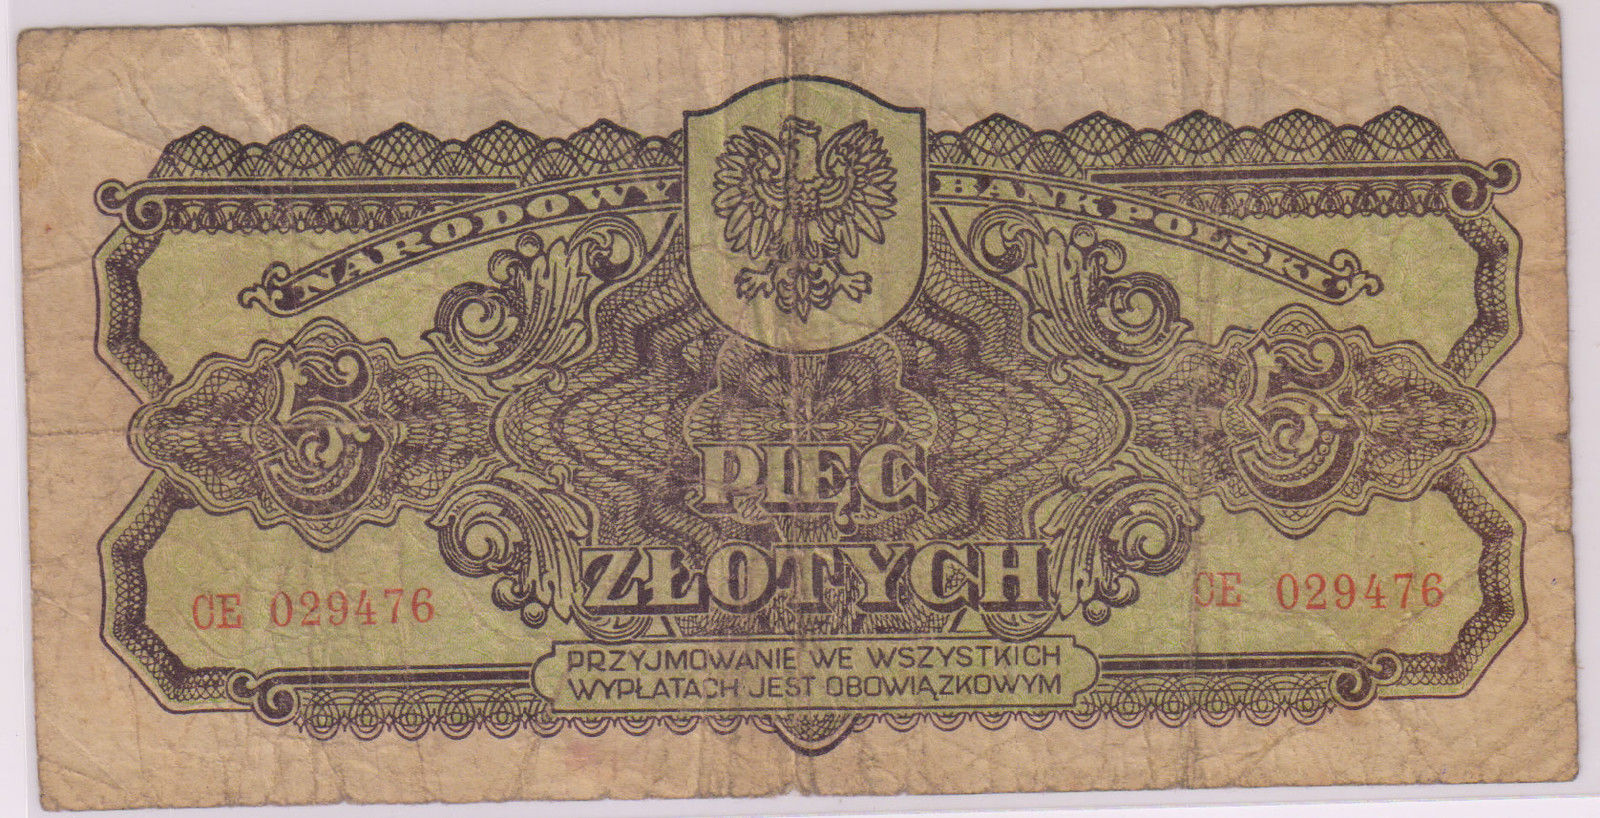 Poland - 5 zlotych 1944 used currency note